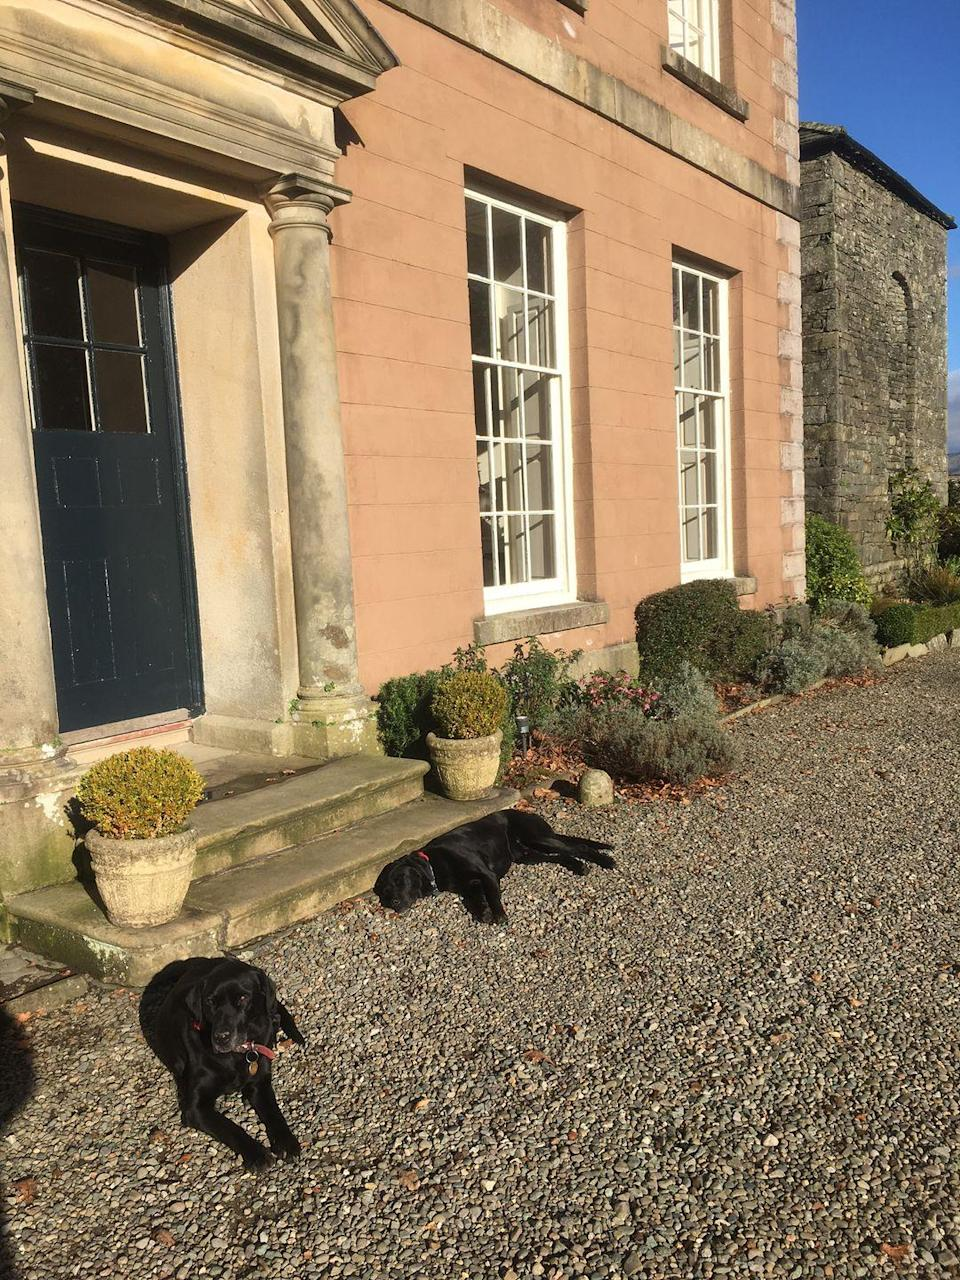 """<p>Formerly owned by none other than Beatrix Potter, the illustrious <a href=""""https://go.redirectingat.com?id=127X1599956&url=https%3A%2F%2Fwww.booking.com%2Fhotel%2Fgb%2Fbelmount-hall.en-gb.html%3Faid%3D2070935%26label%3Ddog-friendly-bed-breakfast&sref=https%3A%2F%2Fwww.countryliving.com%2Fuk%2Ftravel-ideas%2Fdog-friendly%2Fg35121802%2Fdog-friendly-bed-and-breakfast-uk%2F"""" rel=""""nofollow noopener"""" target=""""_blank"""" data-ylk=""""slk:Belmount Hall"""" class=""""link rapid-noclick-resp"""">Belmount Hall</a> sits proudly in the heart of the Lake District, offering views across Esthwaite Water and the Lakeland Hills.</p><p>The dog-friendly B&B's bedrooms have had their period features accentuated, and complemented by both antique pieces and modern en-suites (complete with a power shower).</p><p>Dog-friendly pub grub can be found in the centre of Hawkshead, just a 15-minute walk away, while the shores of Windermere is just under 20 minutes away by car.</p><p><a class=""""link rapid-noclick-resp"""" href=""""https://go.redirectingat.com?id=127X1599956&url=https%3A%2F%2Fwww.booking.com%2Fhotel%2Fgb%2Fbelmount-hall.en-gb.html%3Faid%3D2070935%26label%3Ddog-friendly-bed-breakfast&sref=https%3A%2F%2Fwww.countryliving.com%2Fuk%2Ftravel-ideas%2Fdog-friendly%2Fg35121802%2Fdog-friendly-bed-and-breakfast-uk%2F"""" rel=""""nofollow noopener"""" target=""""_blank"""" data-ylk=""""slk:CHECK AVAILABILITY"""">CHECK AVAILABILITY</a></p>"""